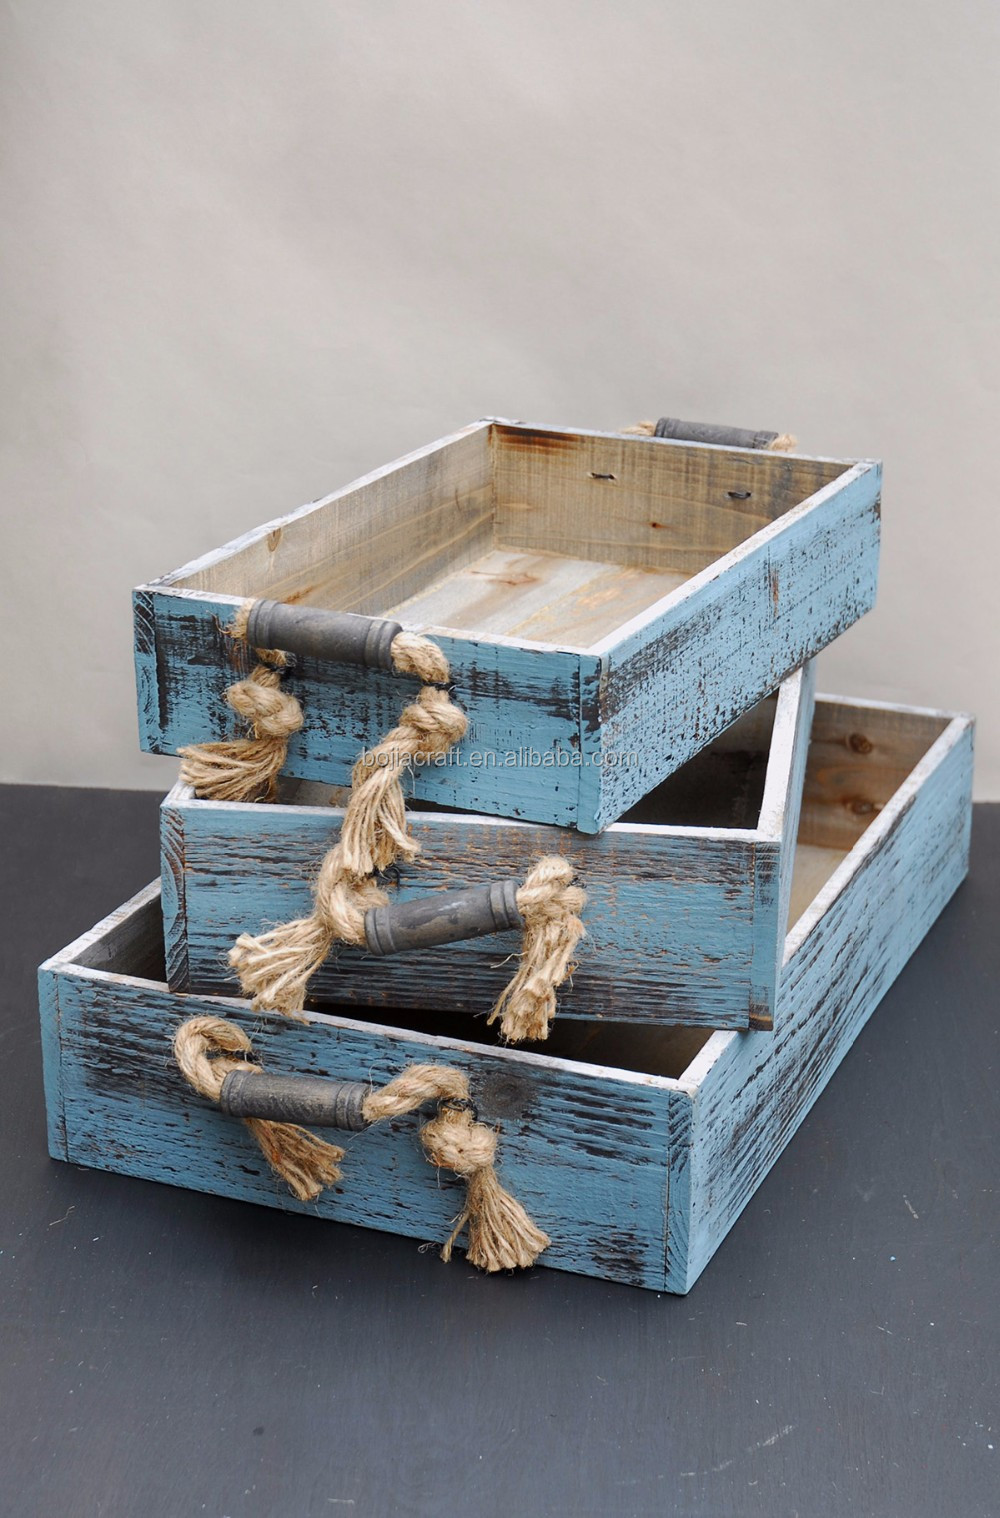 Cheap custom wooden boxes wine packaging crates for sale for Where do i find wooden crates